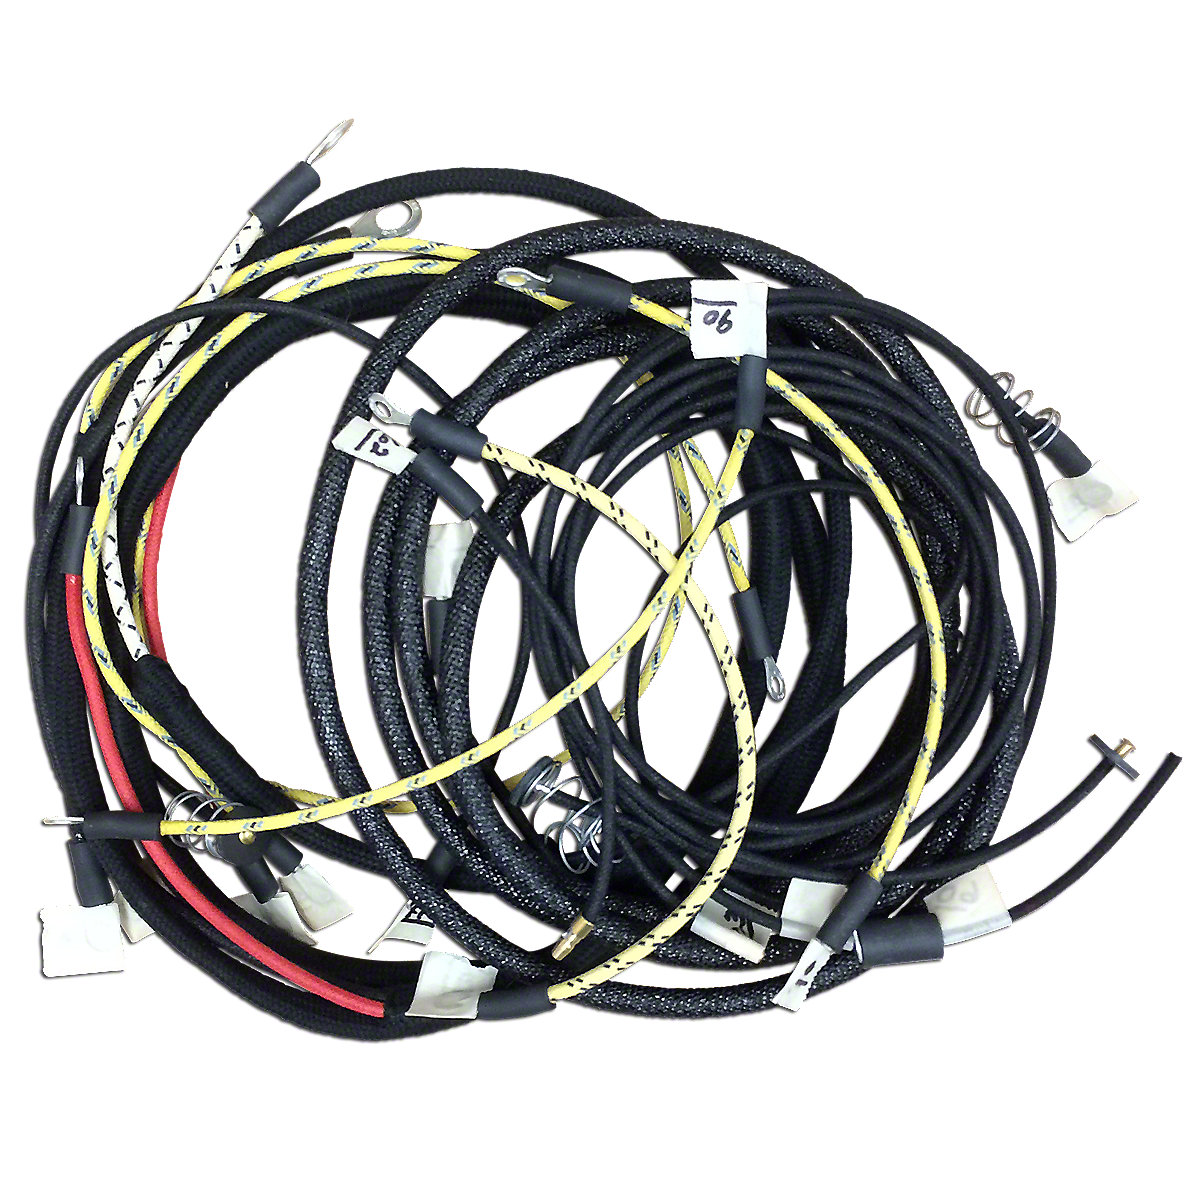 Wiring Harness 2016 Ford 9n Diagram 12 Volt 1 Wire Alternator Ua50513 For System